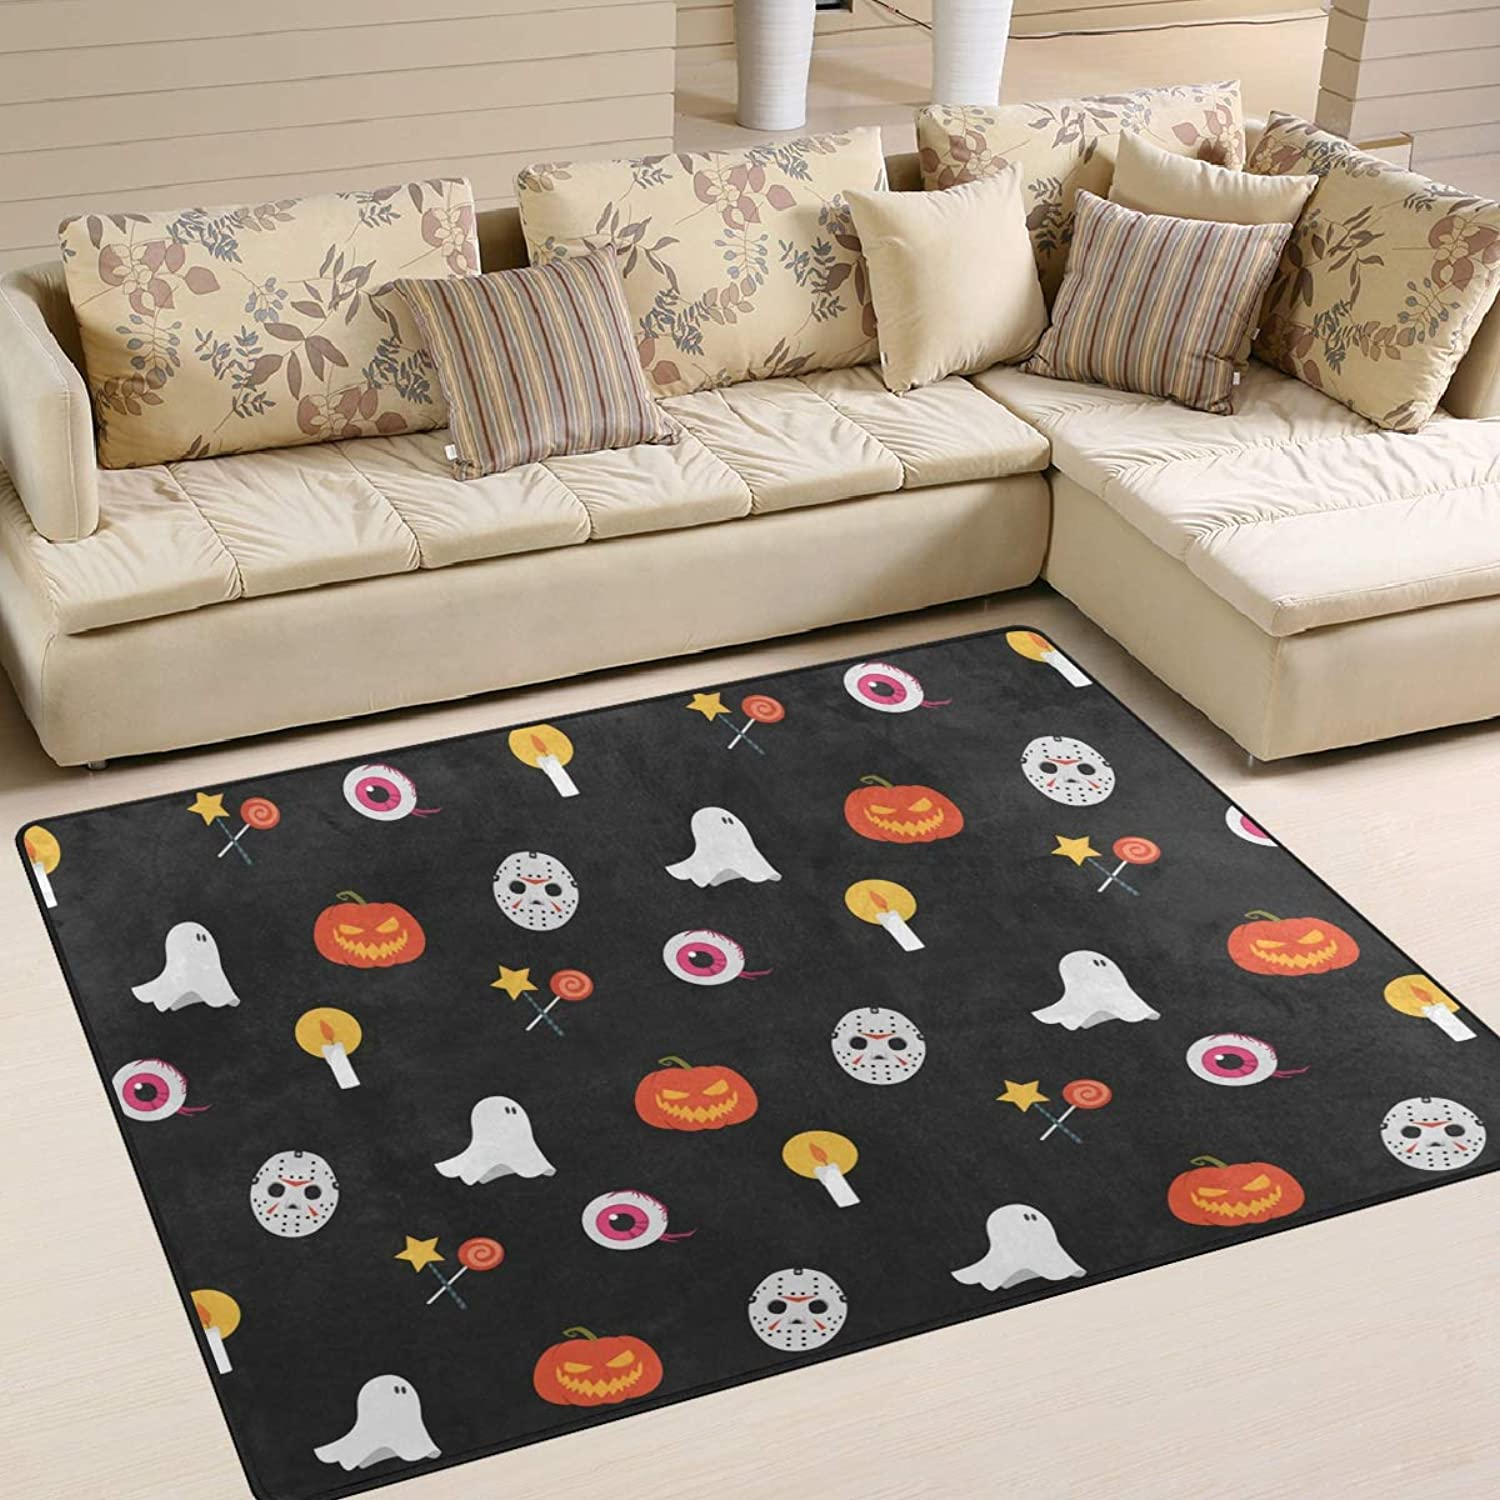 Halloween Pumpkin Ghost Mask Area Rugs 80 x 58 Inch Door Mats Indoor Polyester Non Slip Multi Rectangle Carpet Kitchen Floor Runner Decoration for Home Bedroom Living Dining Room